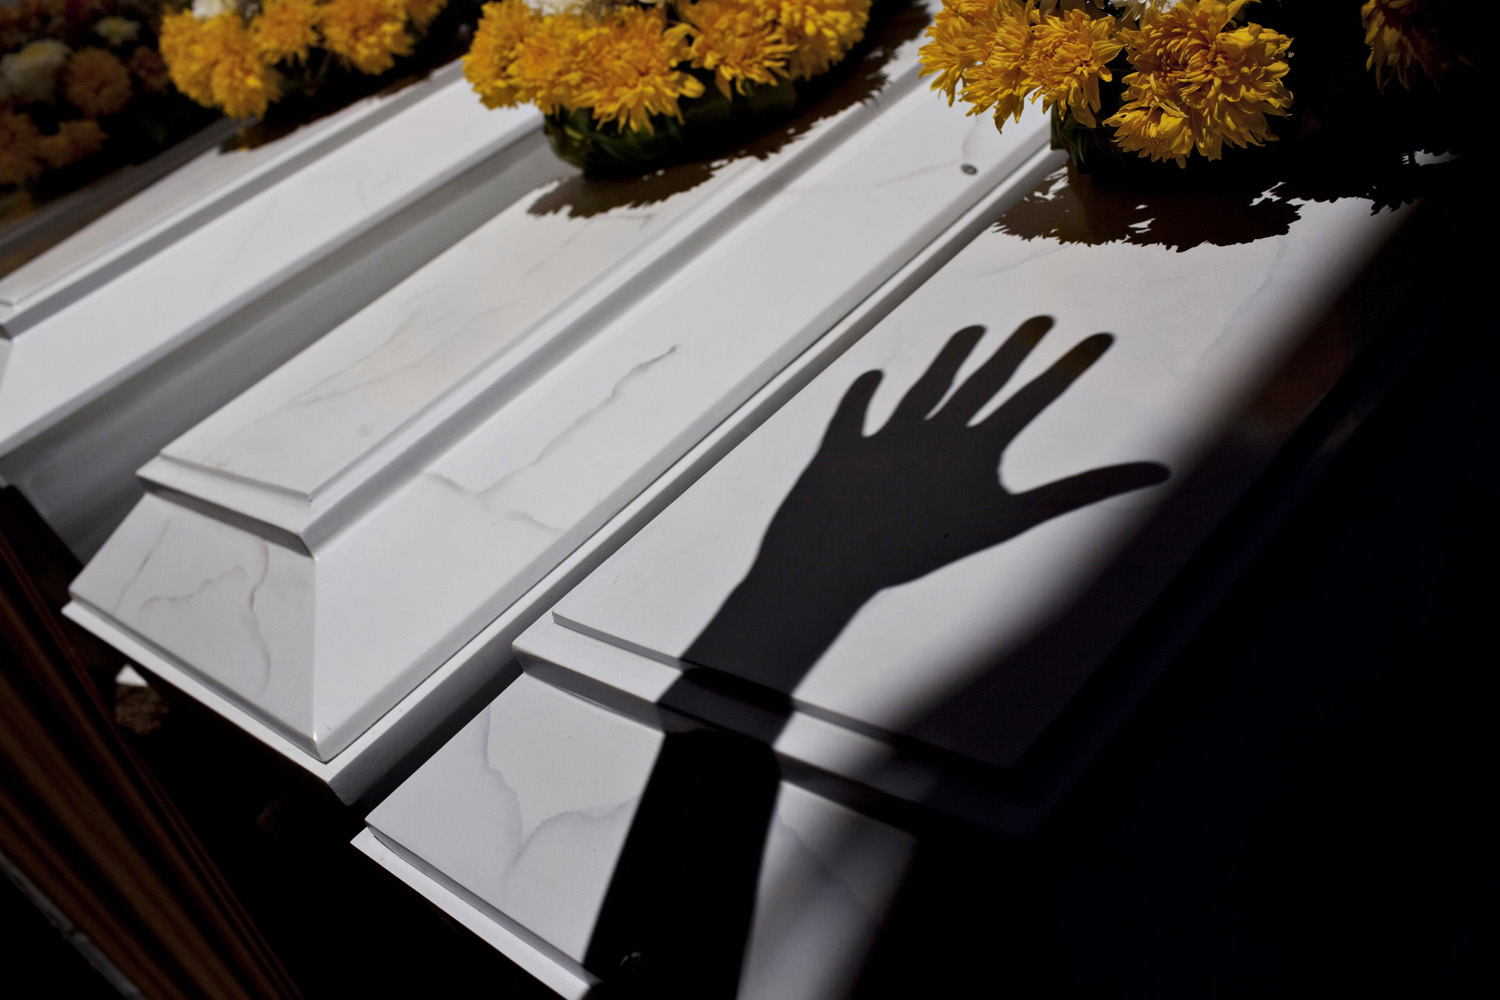 Jan. 25, 2013. The shadow of a relative's hand is projected onto the coffins of victims, killed in massacres executed by Shining Path militant group and the army in Peru's southern district of Chungui between 1984 and 1985, during a funeral ceremony in Ayacucho city.